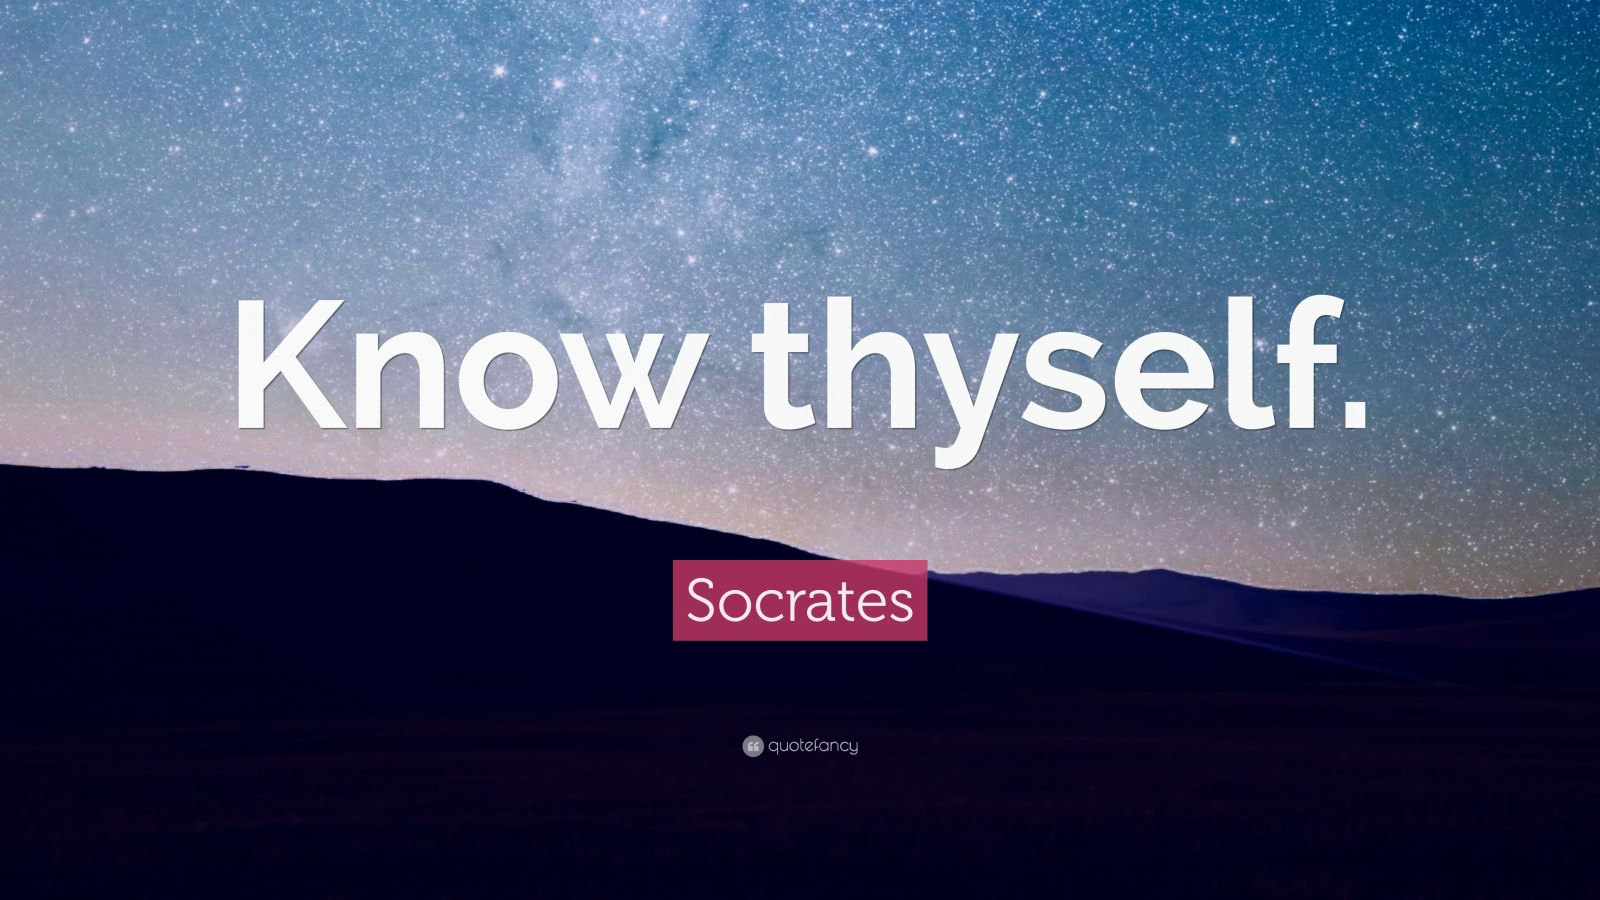 Beautiful Wallpaper Of Love With Quotes Socrates Quote Know Thyself 32 Wallpapers Quotefancy